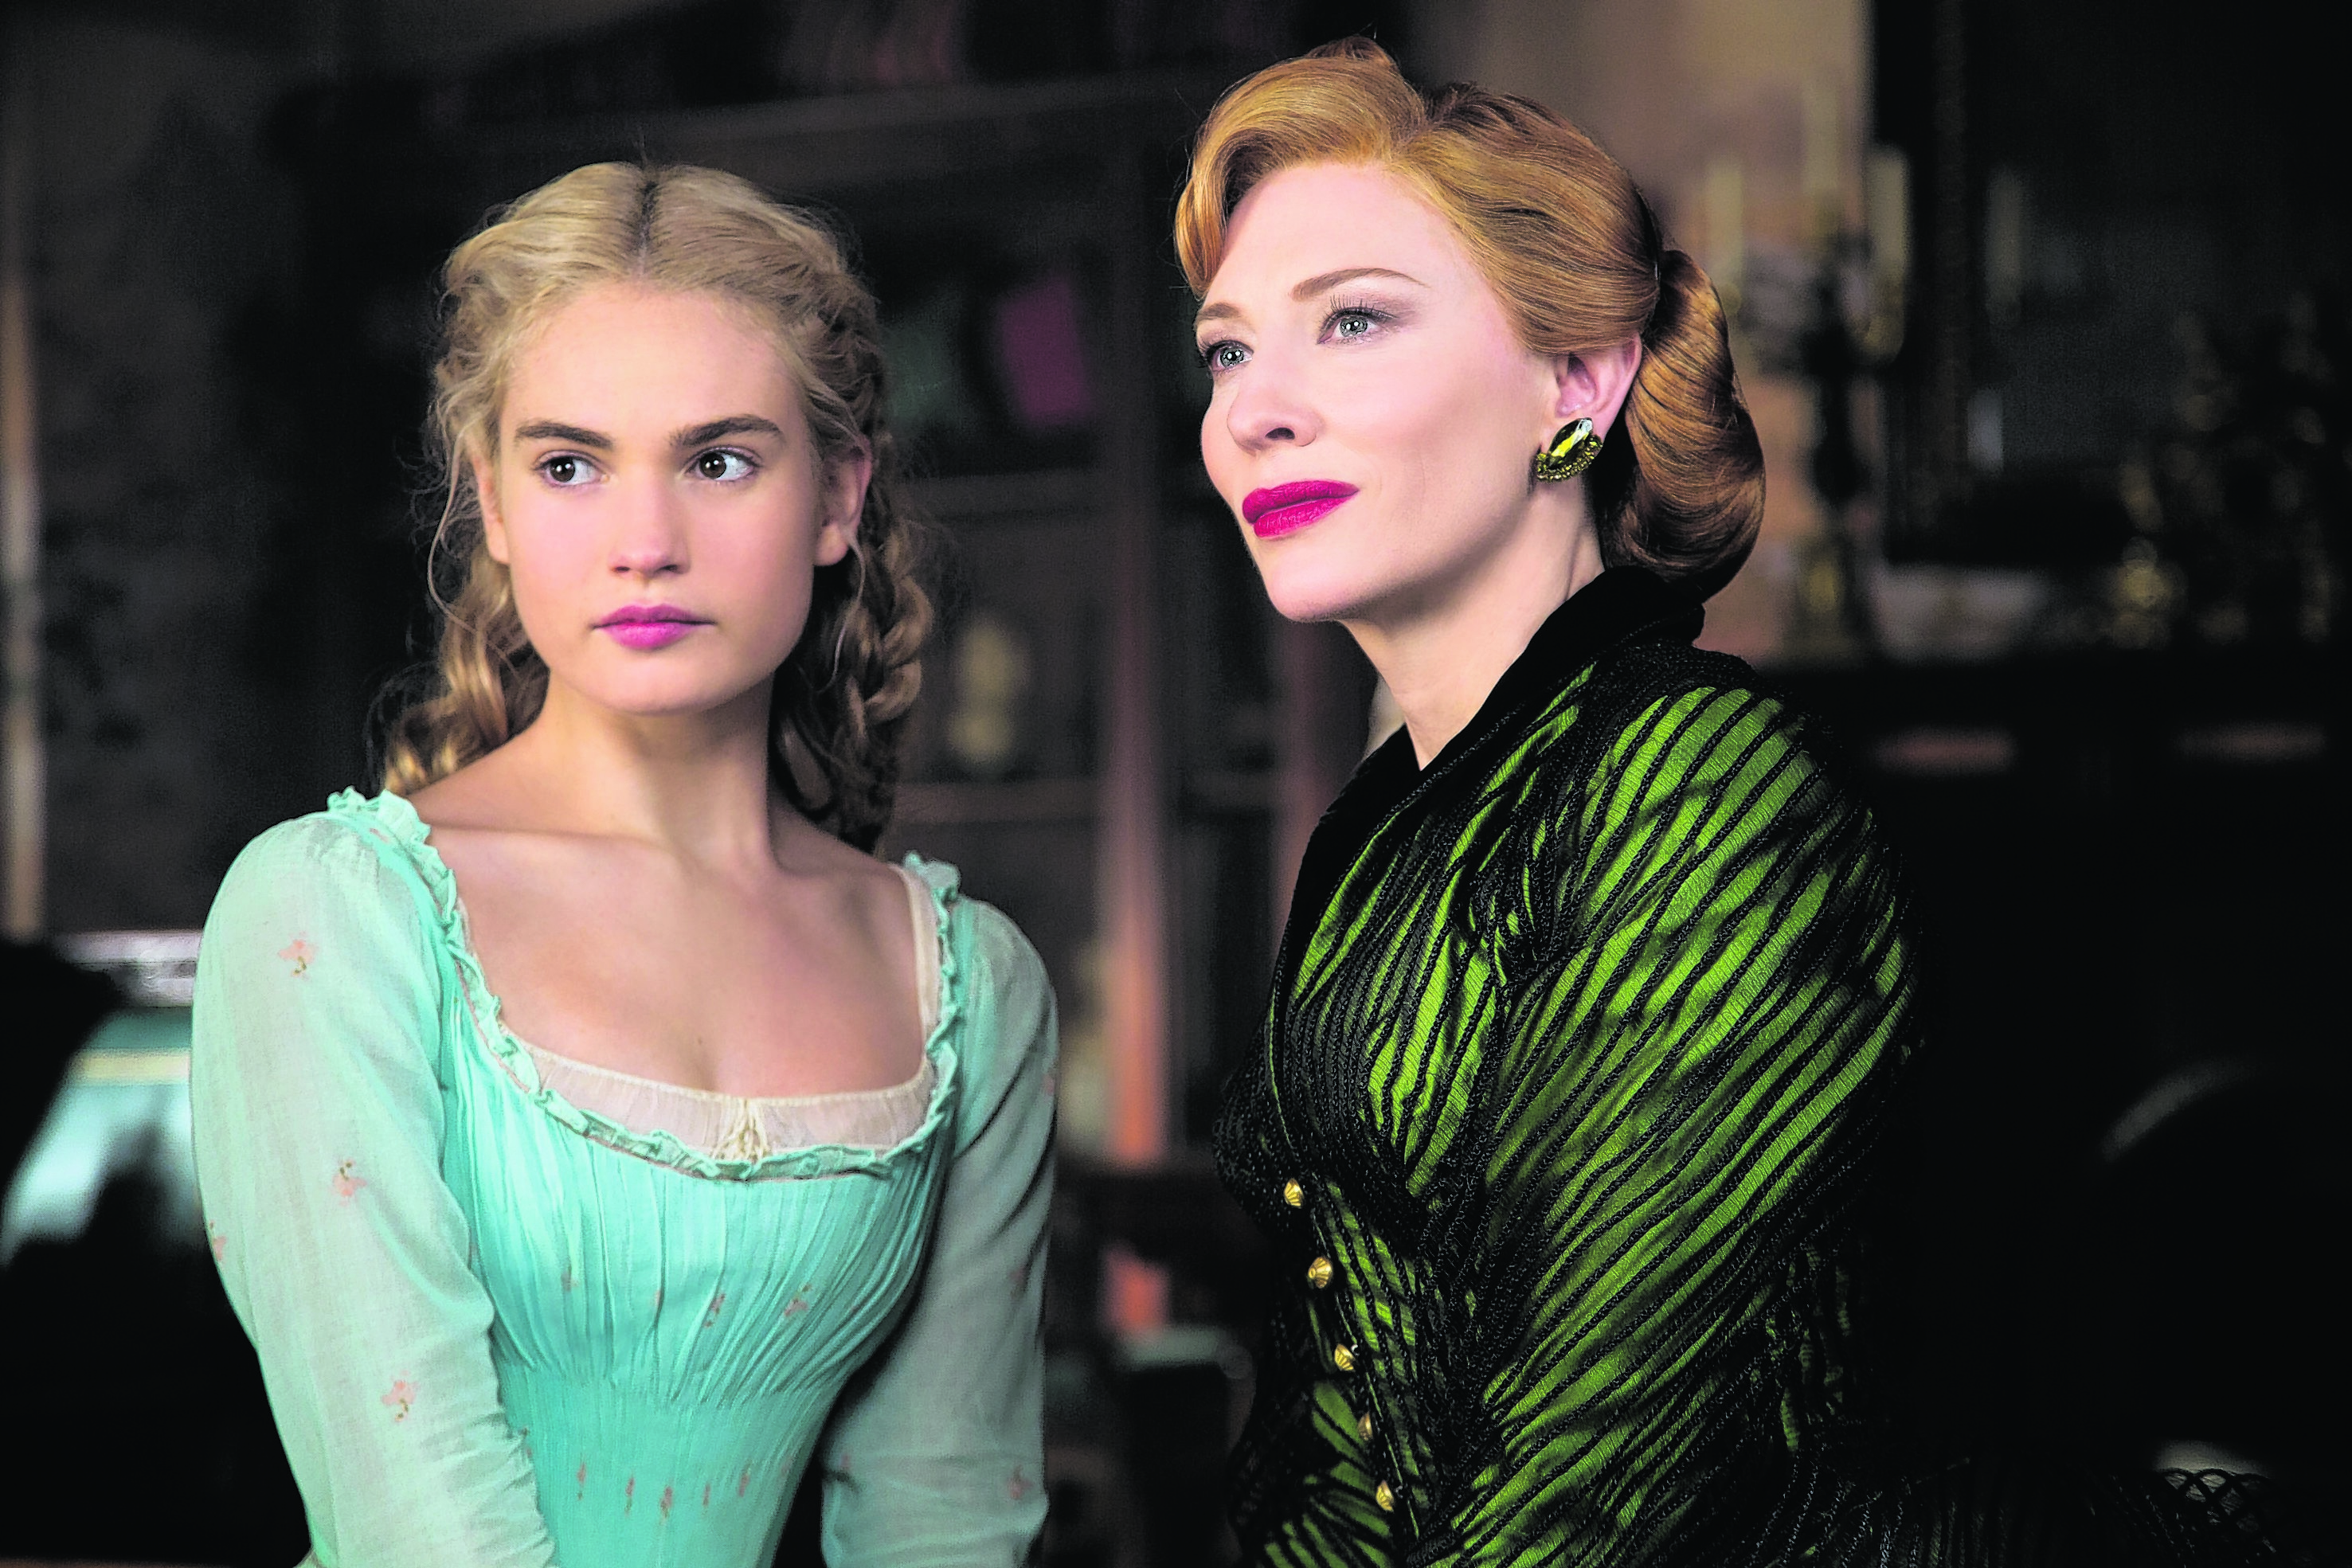 Lily James and Cate Blanchett starring in Cinderella